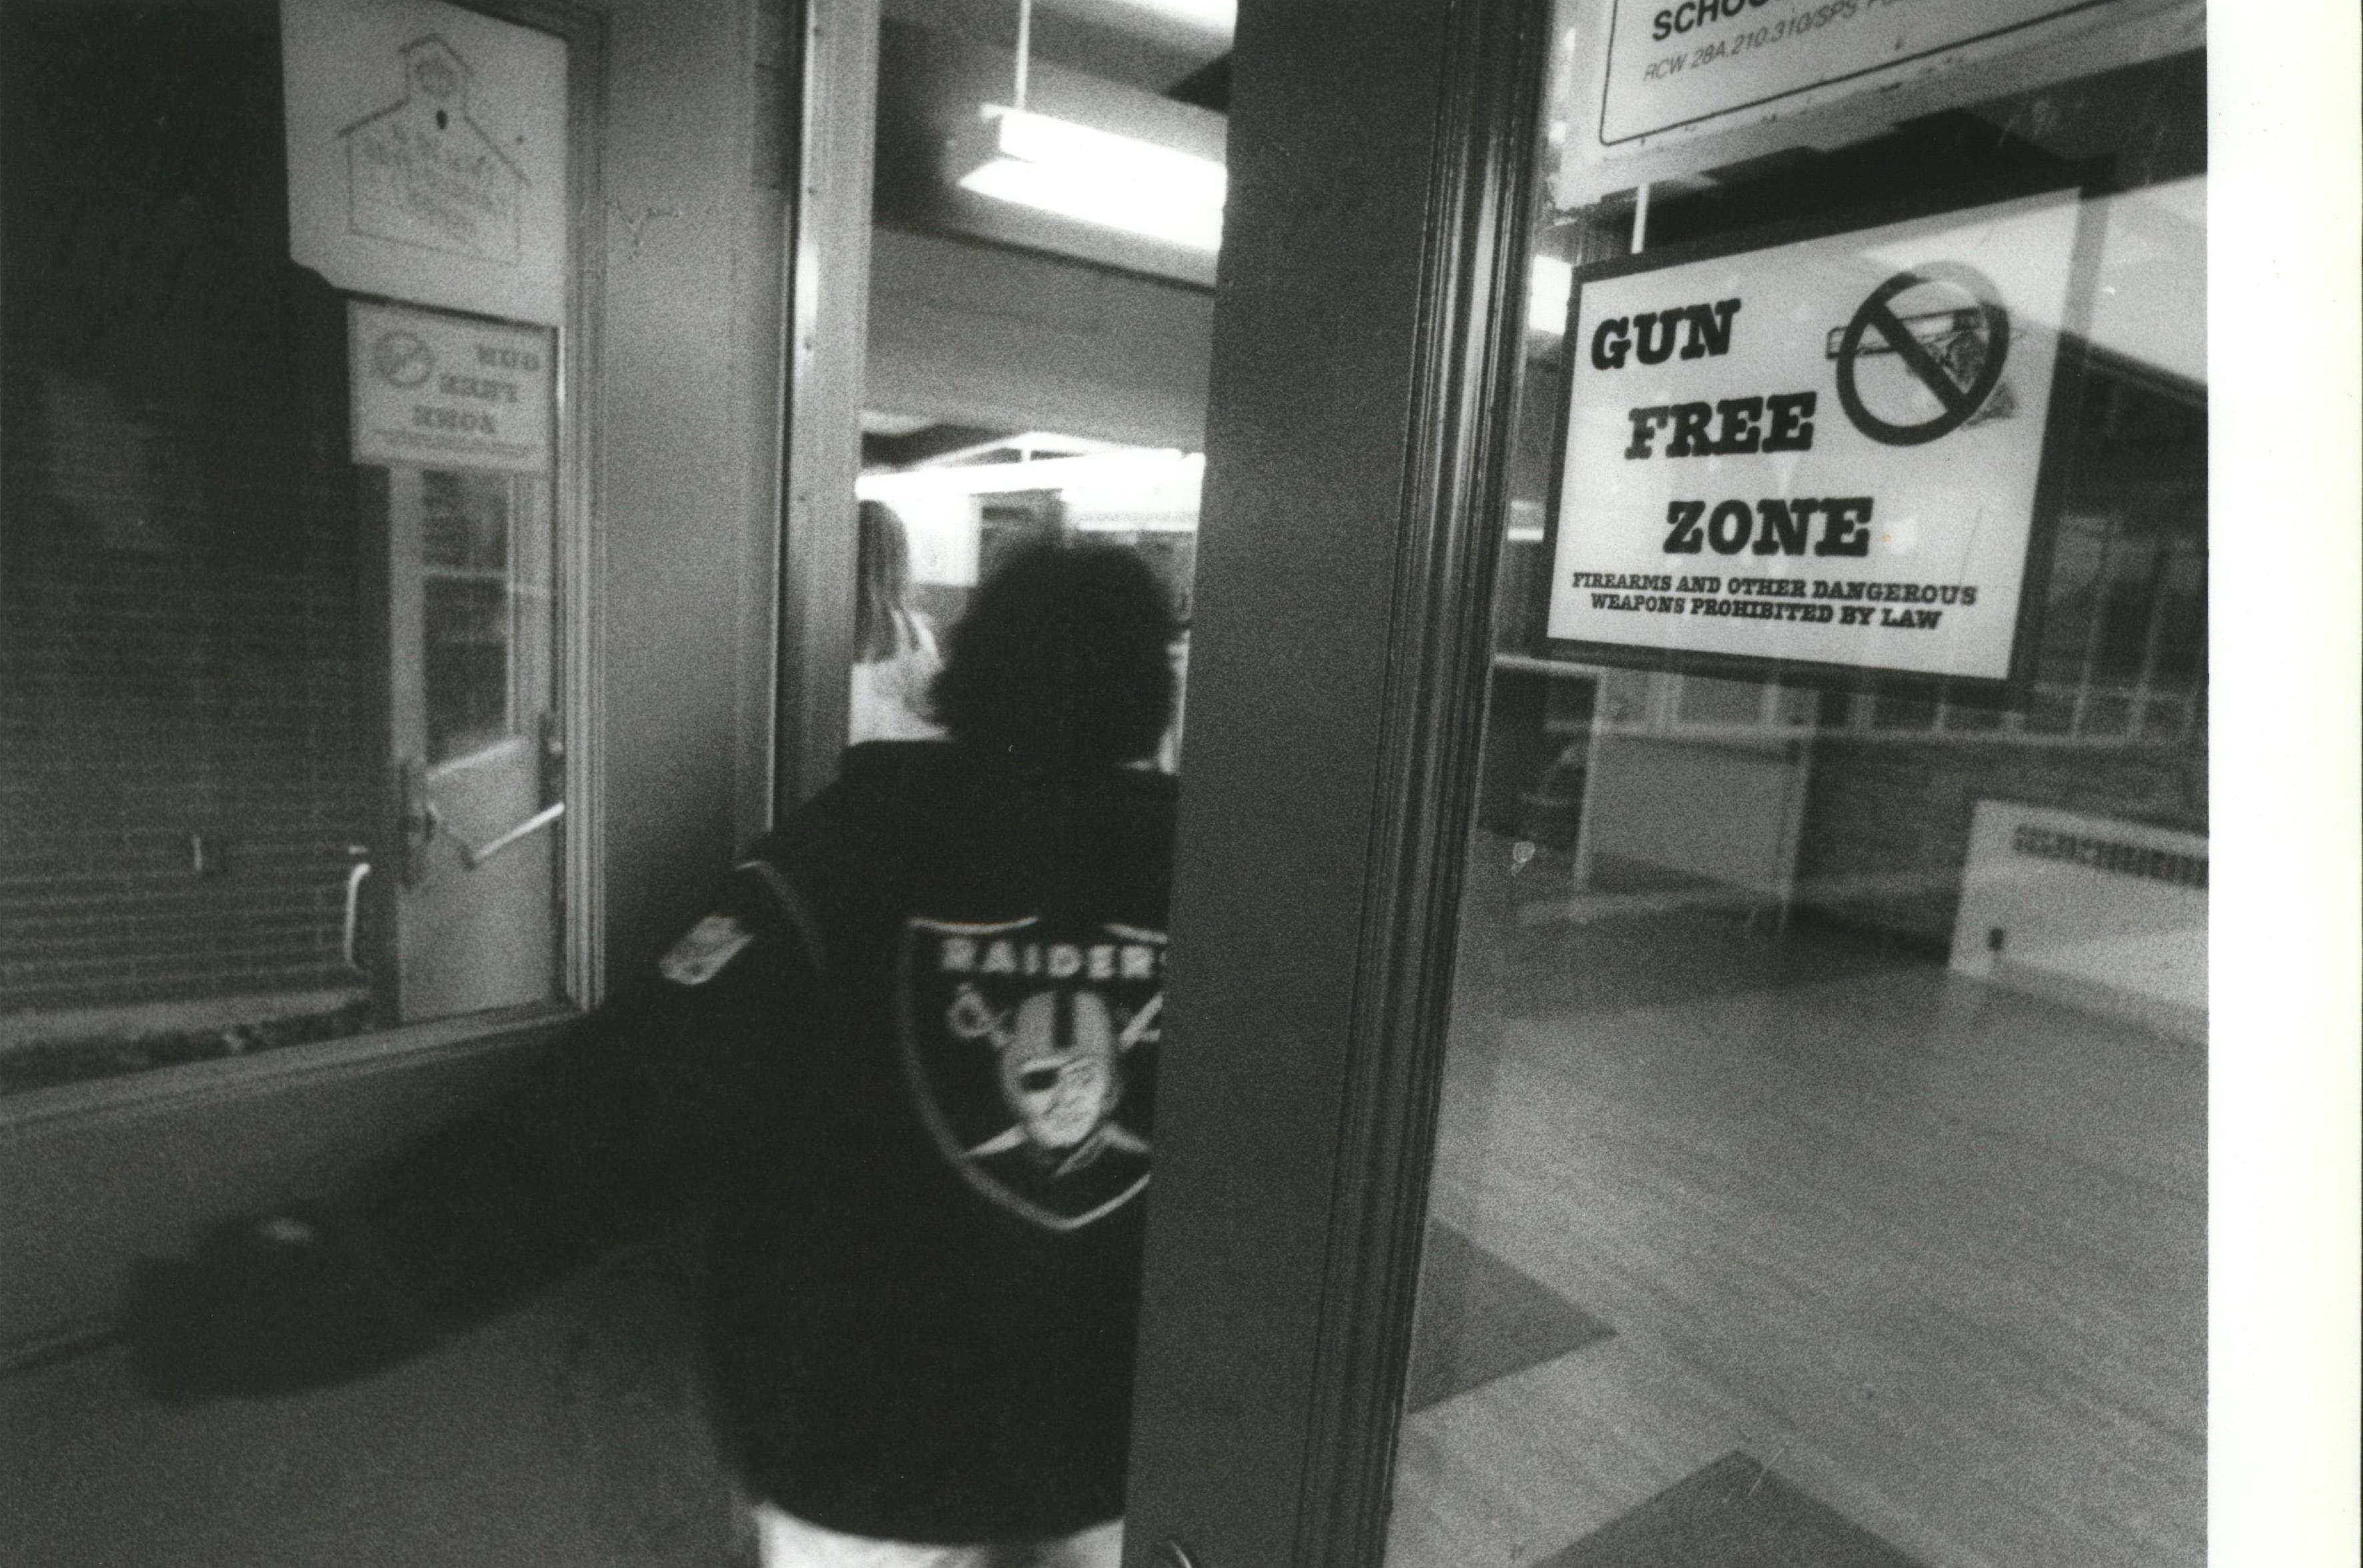 The entrances to shaw middle school had gun free zone warnings in this 1993 photo